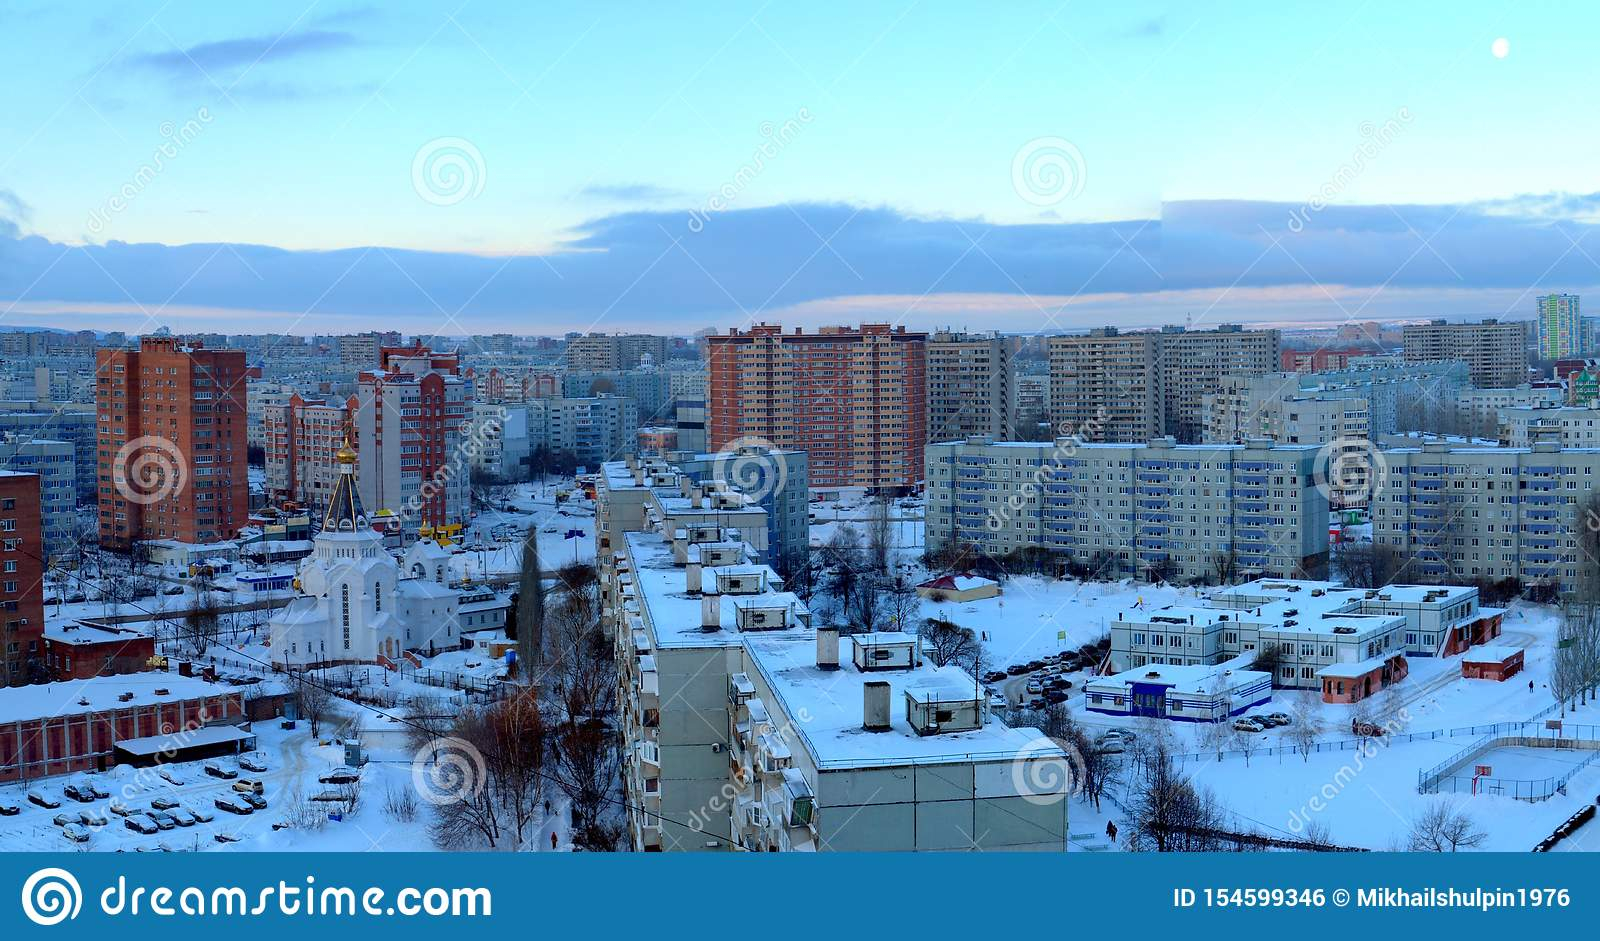 Morning panorama of the city of Togliatti overlooking the Church of the Holy Grand Duke Alexander Nevsky